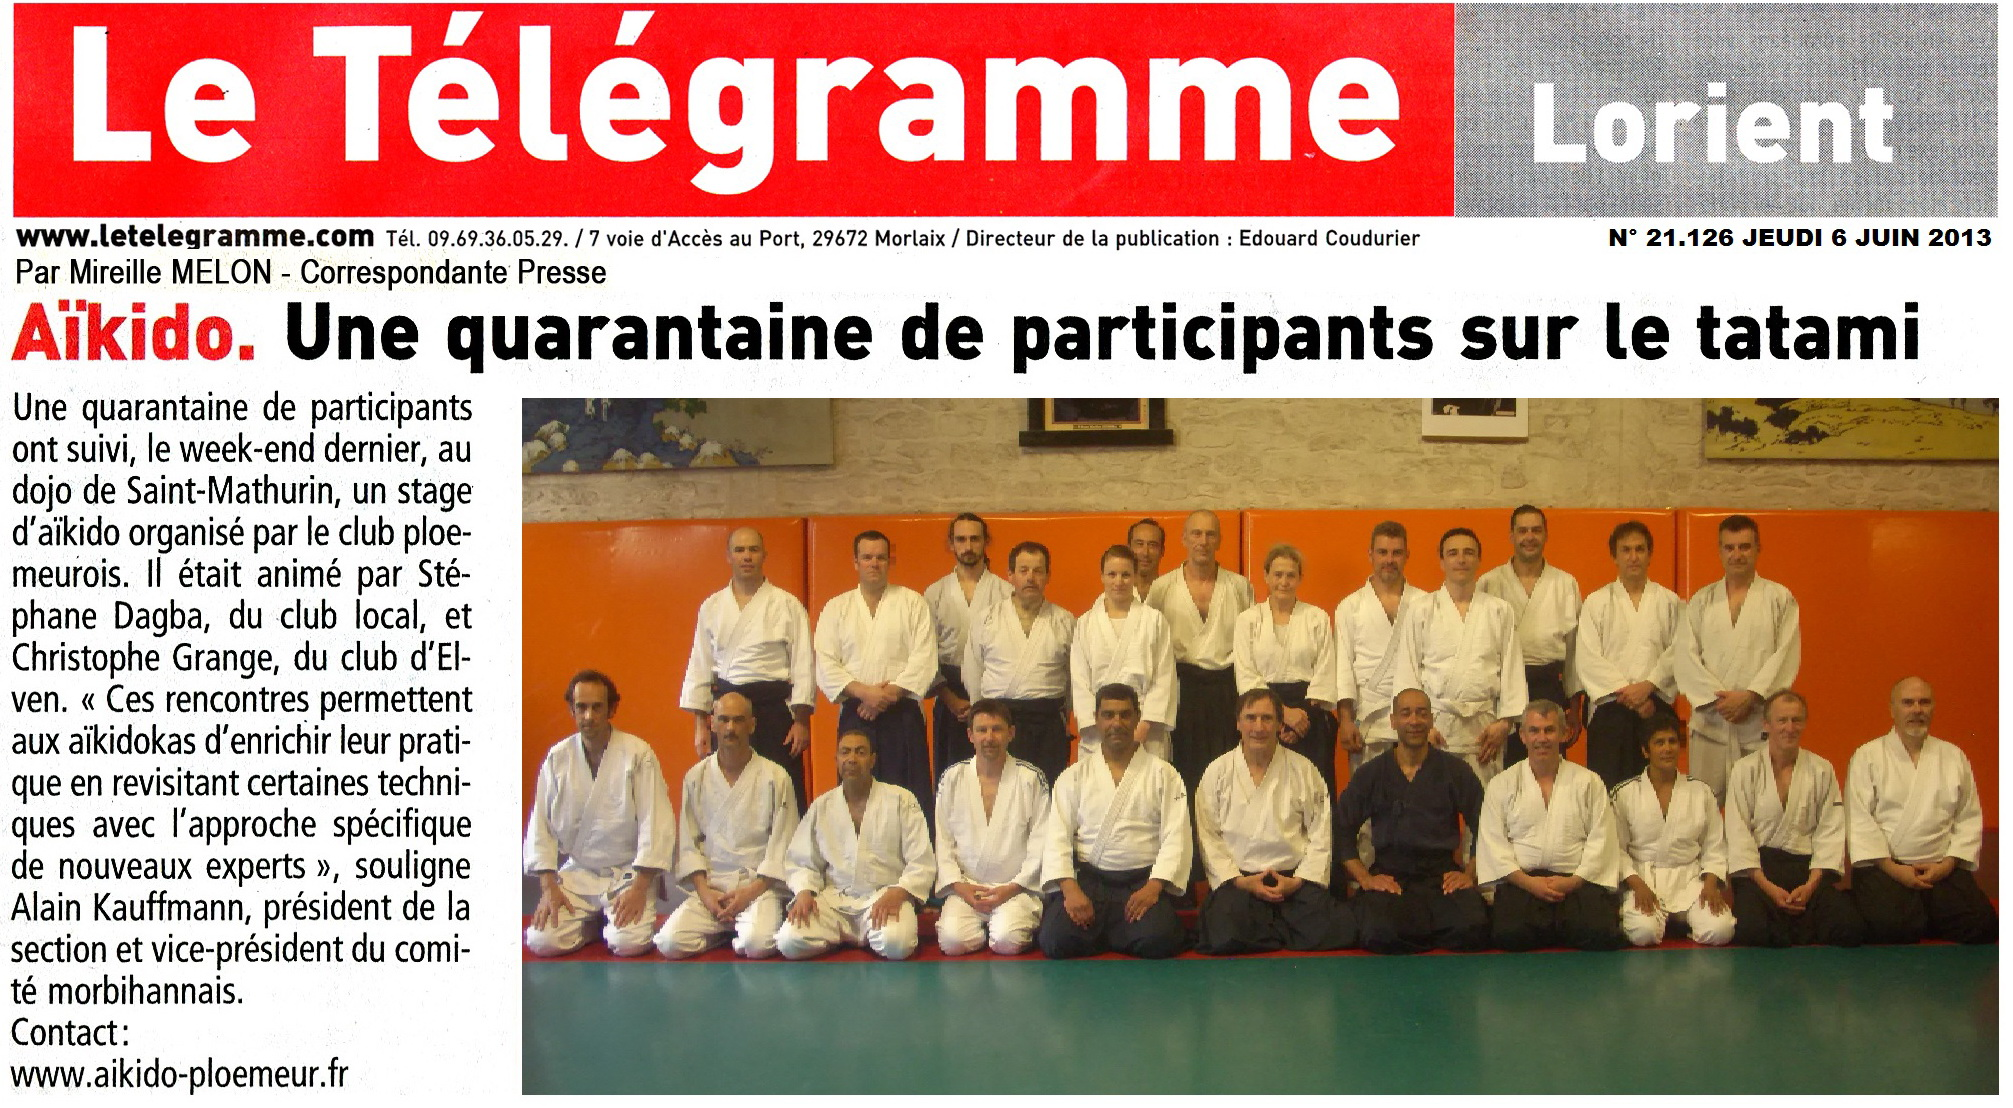 article telegramme du 6 juin 2013 20130606 1280412665